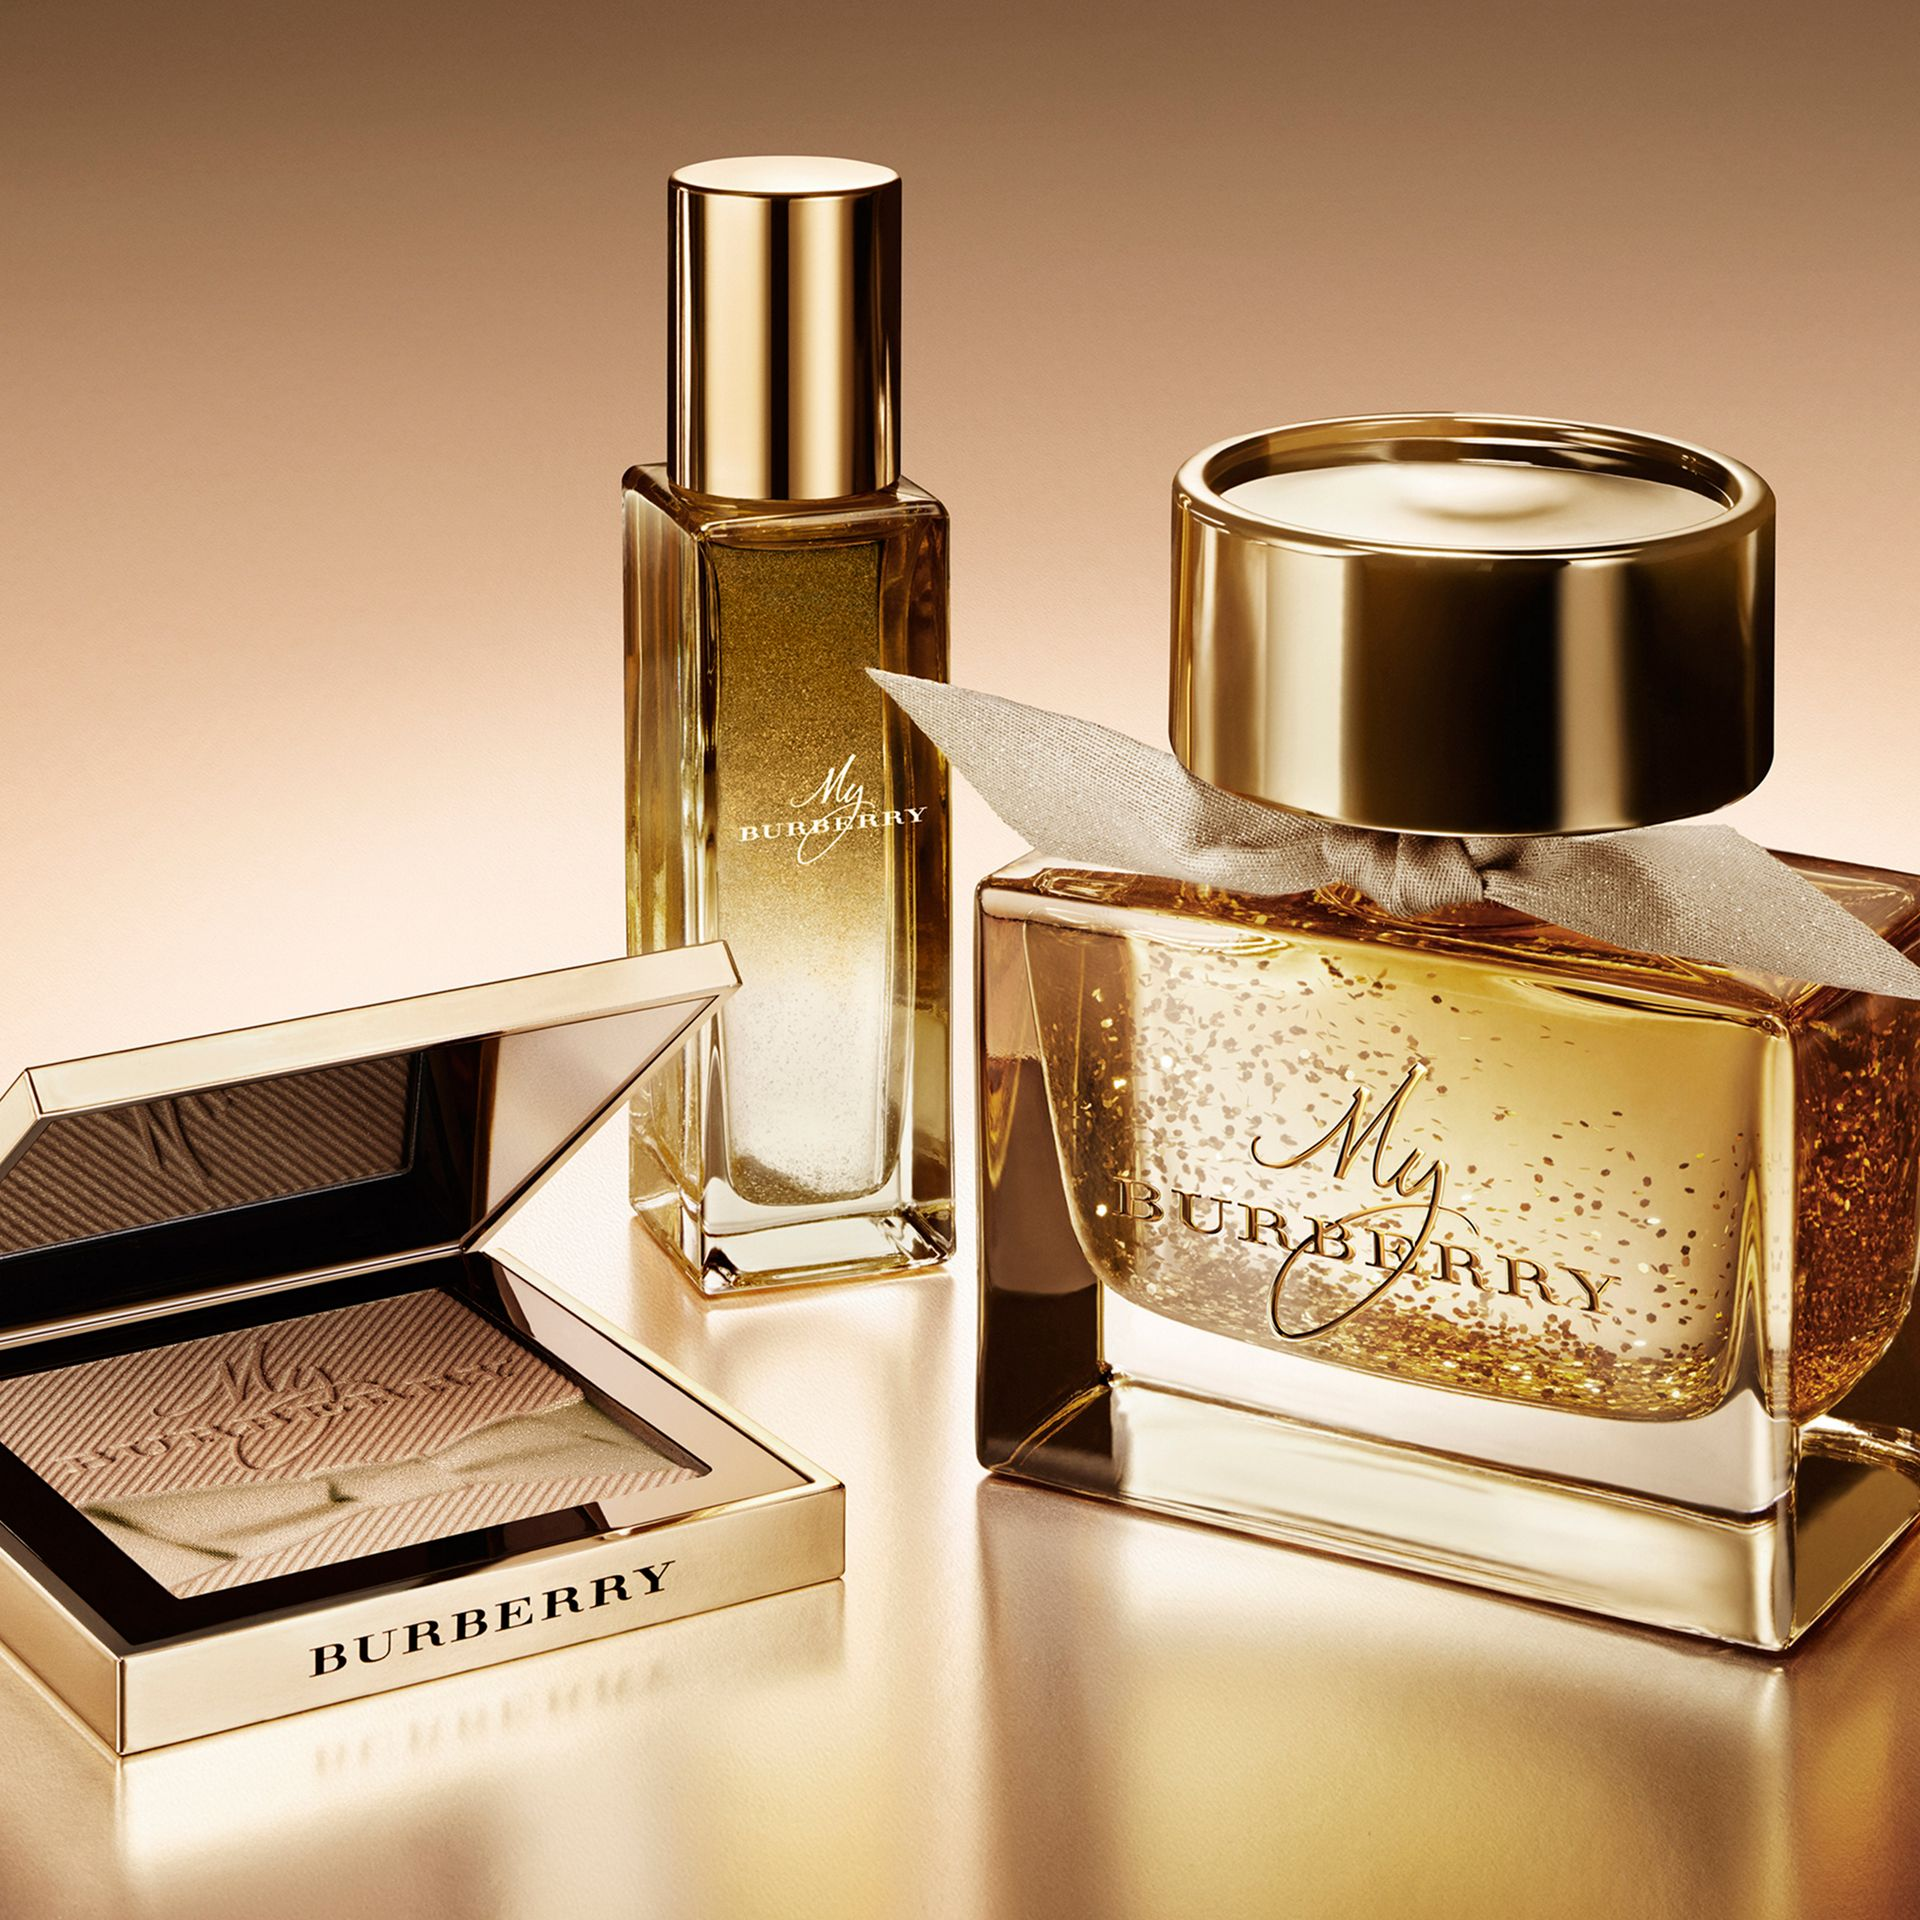 My Burberry Eau de Parfum 50 ml in limitierter Auflage (50ml) - Damen | Burberry - Galerie-Bild 1